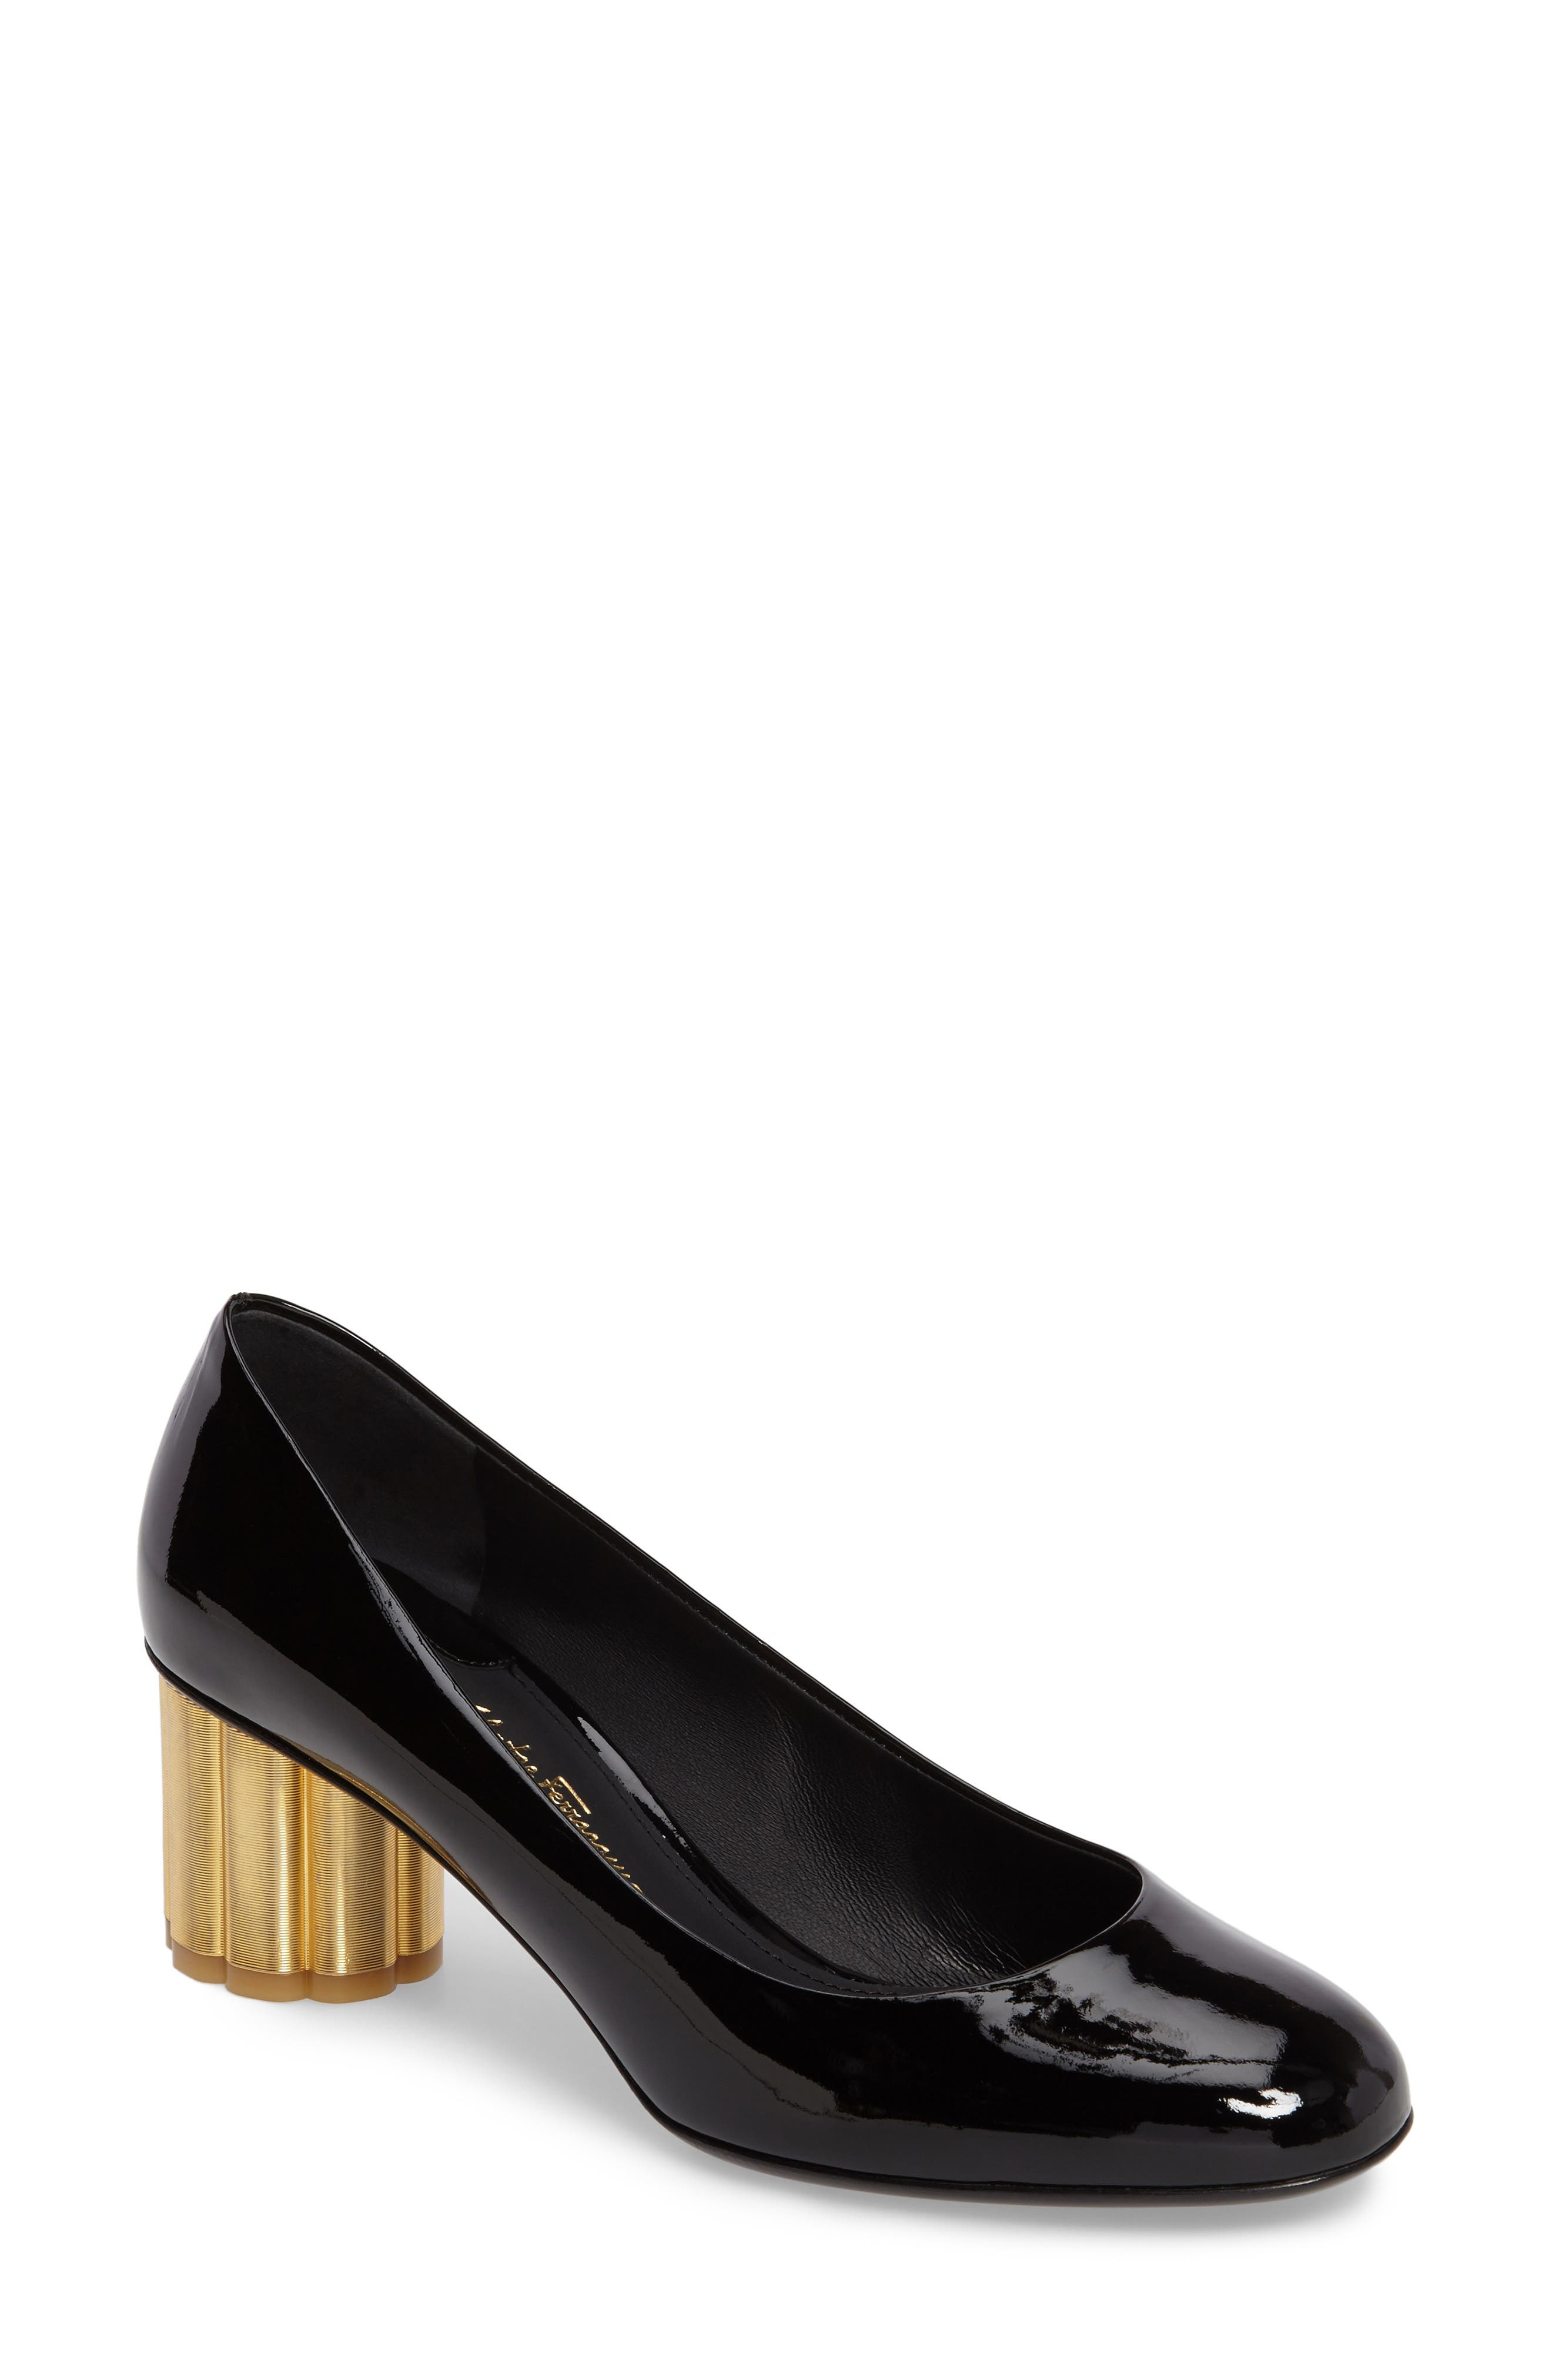 SALVATORE FERRAGAMO Rounded Toe Flower Heel Pump